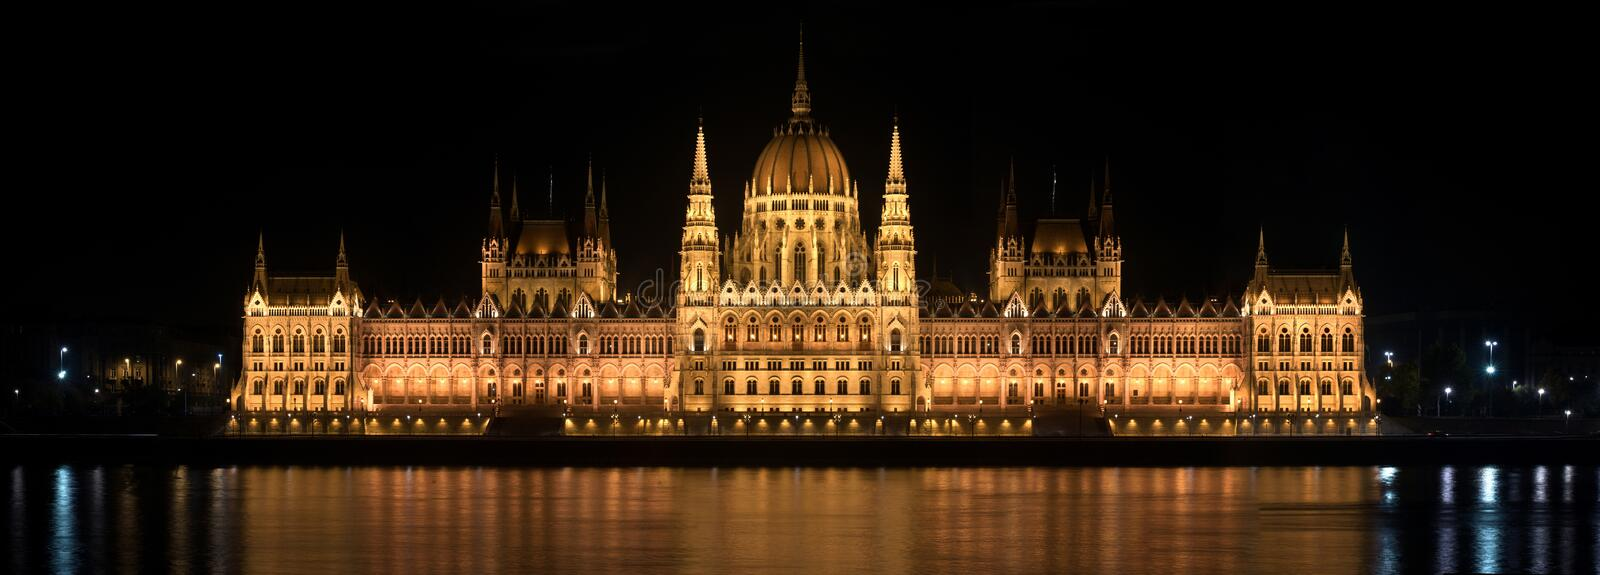 Download Parlament In Hungary At Night Stock Image - Image of dark, building: 22090655